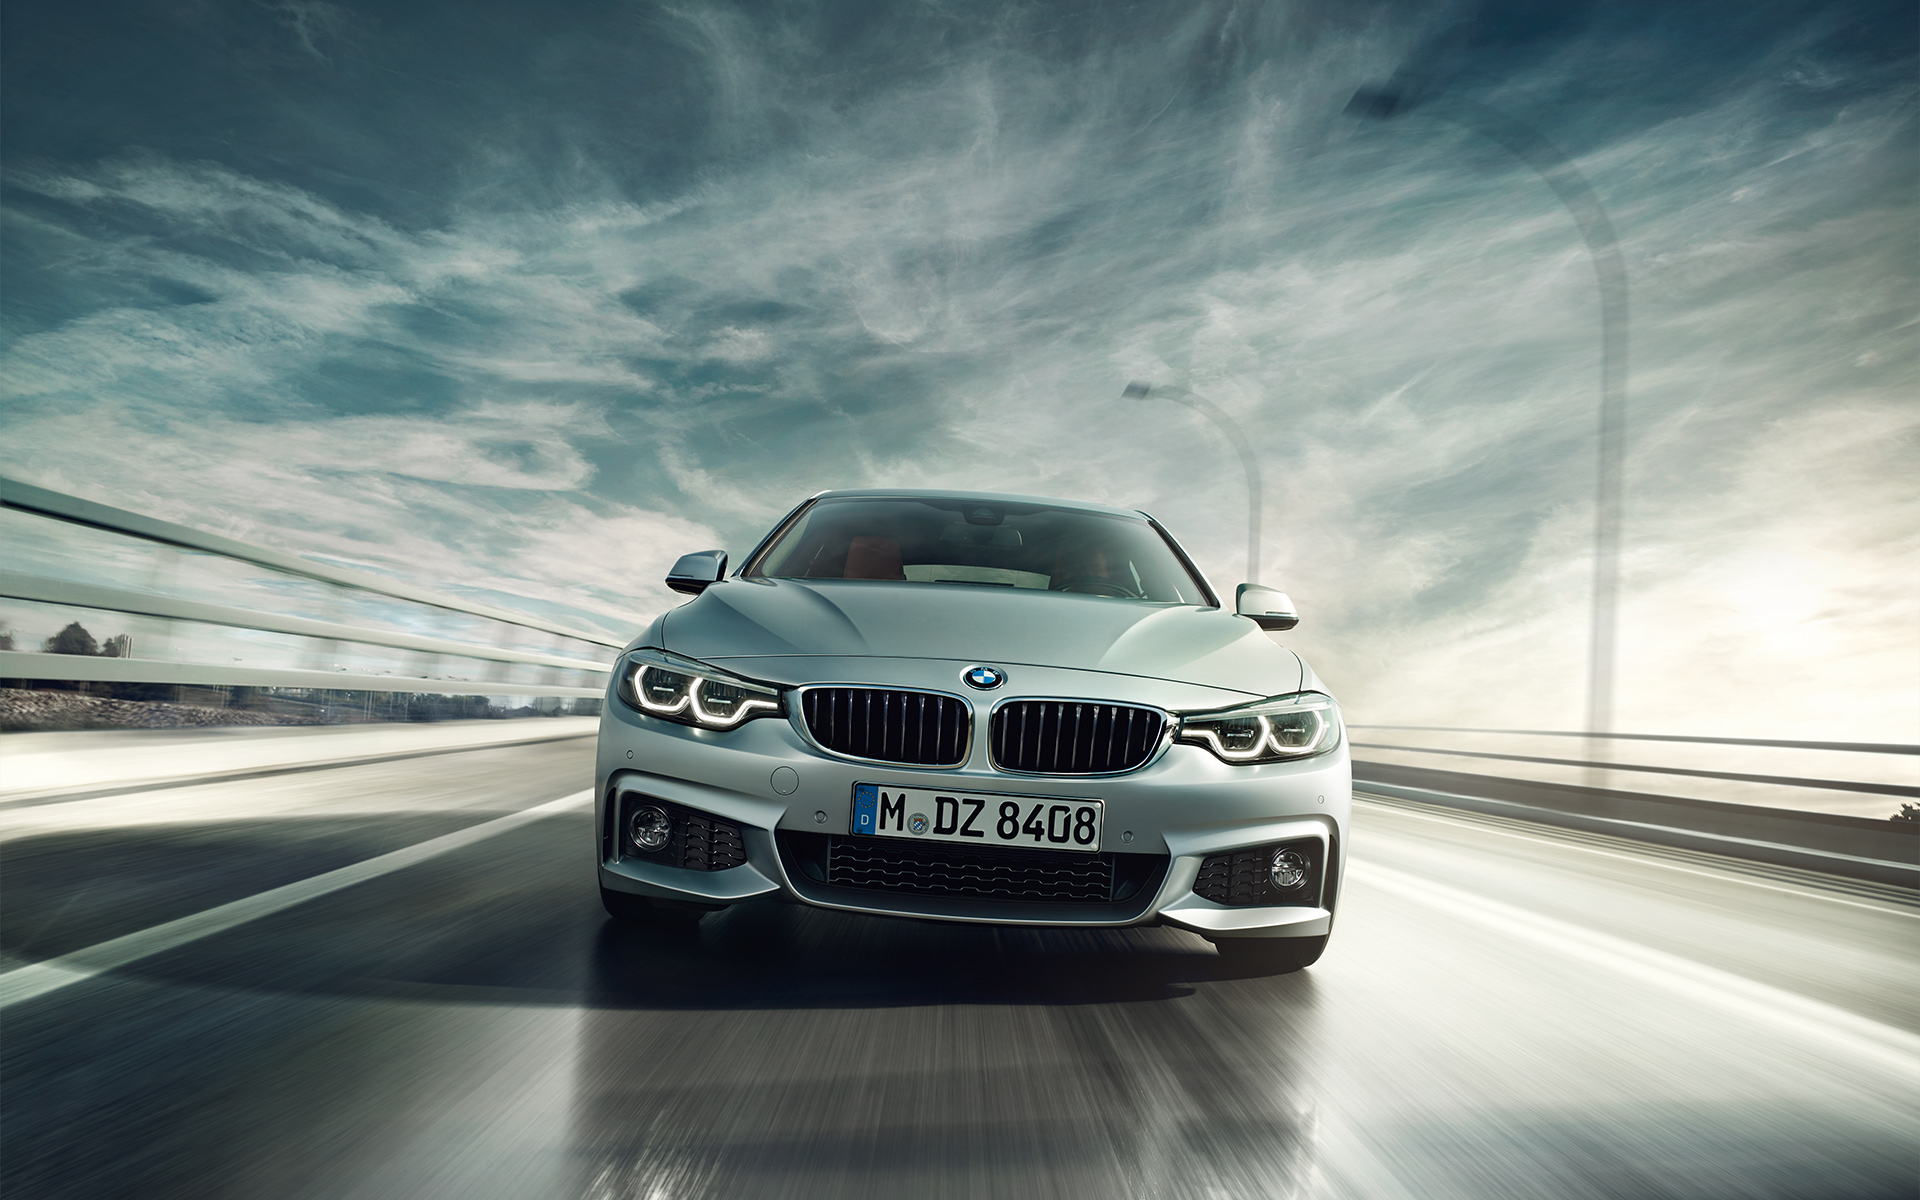 BMW-4-series-gran-coupe-images-and-videos-1920x1200-03.jpg.asset.1487328215131